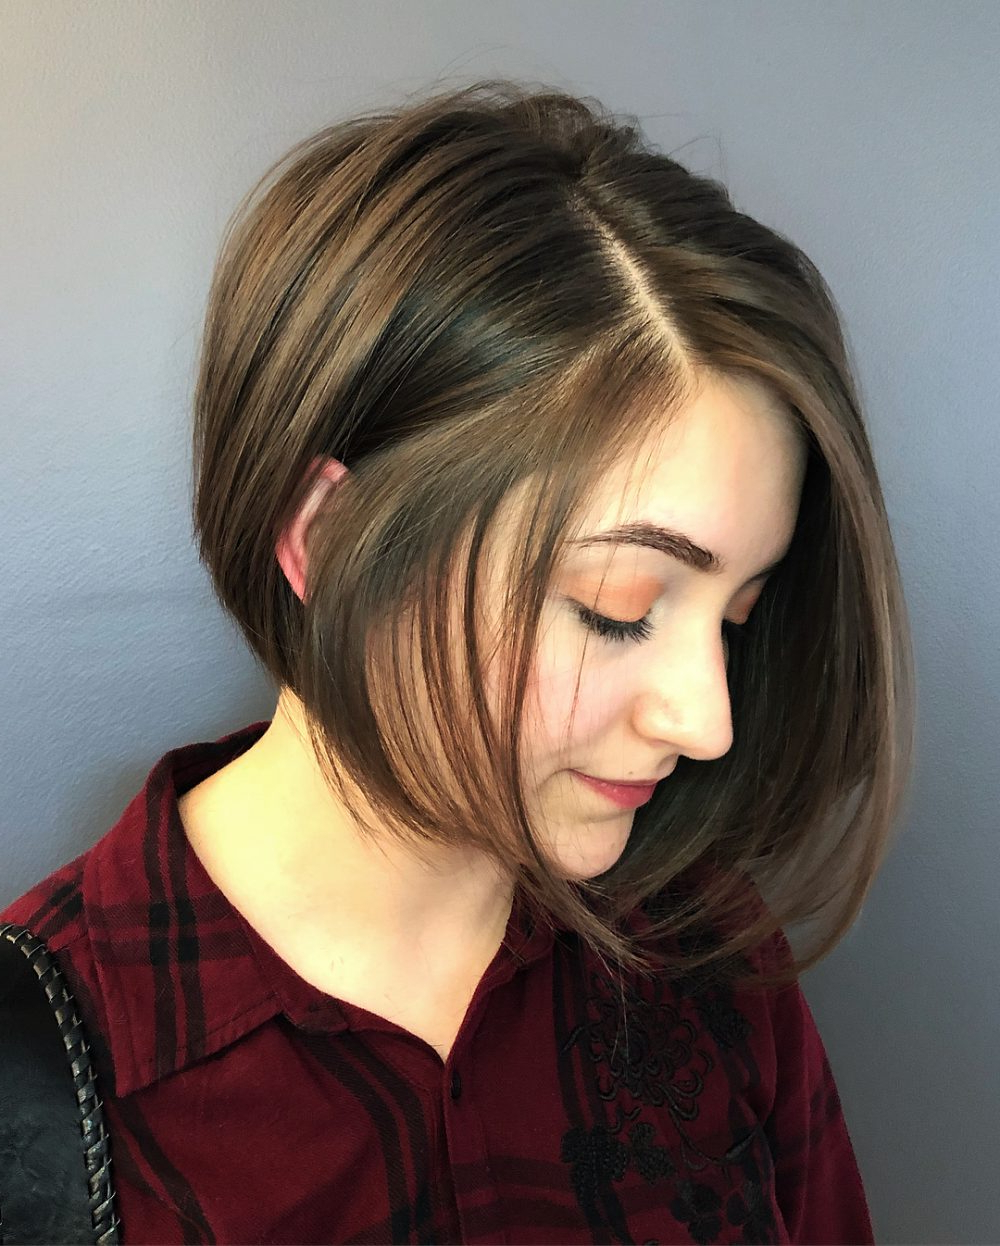 33 Flattering Short Hairstyles For Round Faces In 2018 Throughout Short Hairstyles For Obese Faces (View 2 of 25)